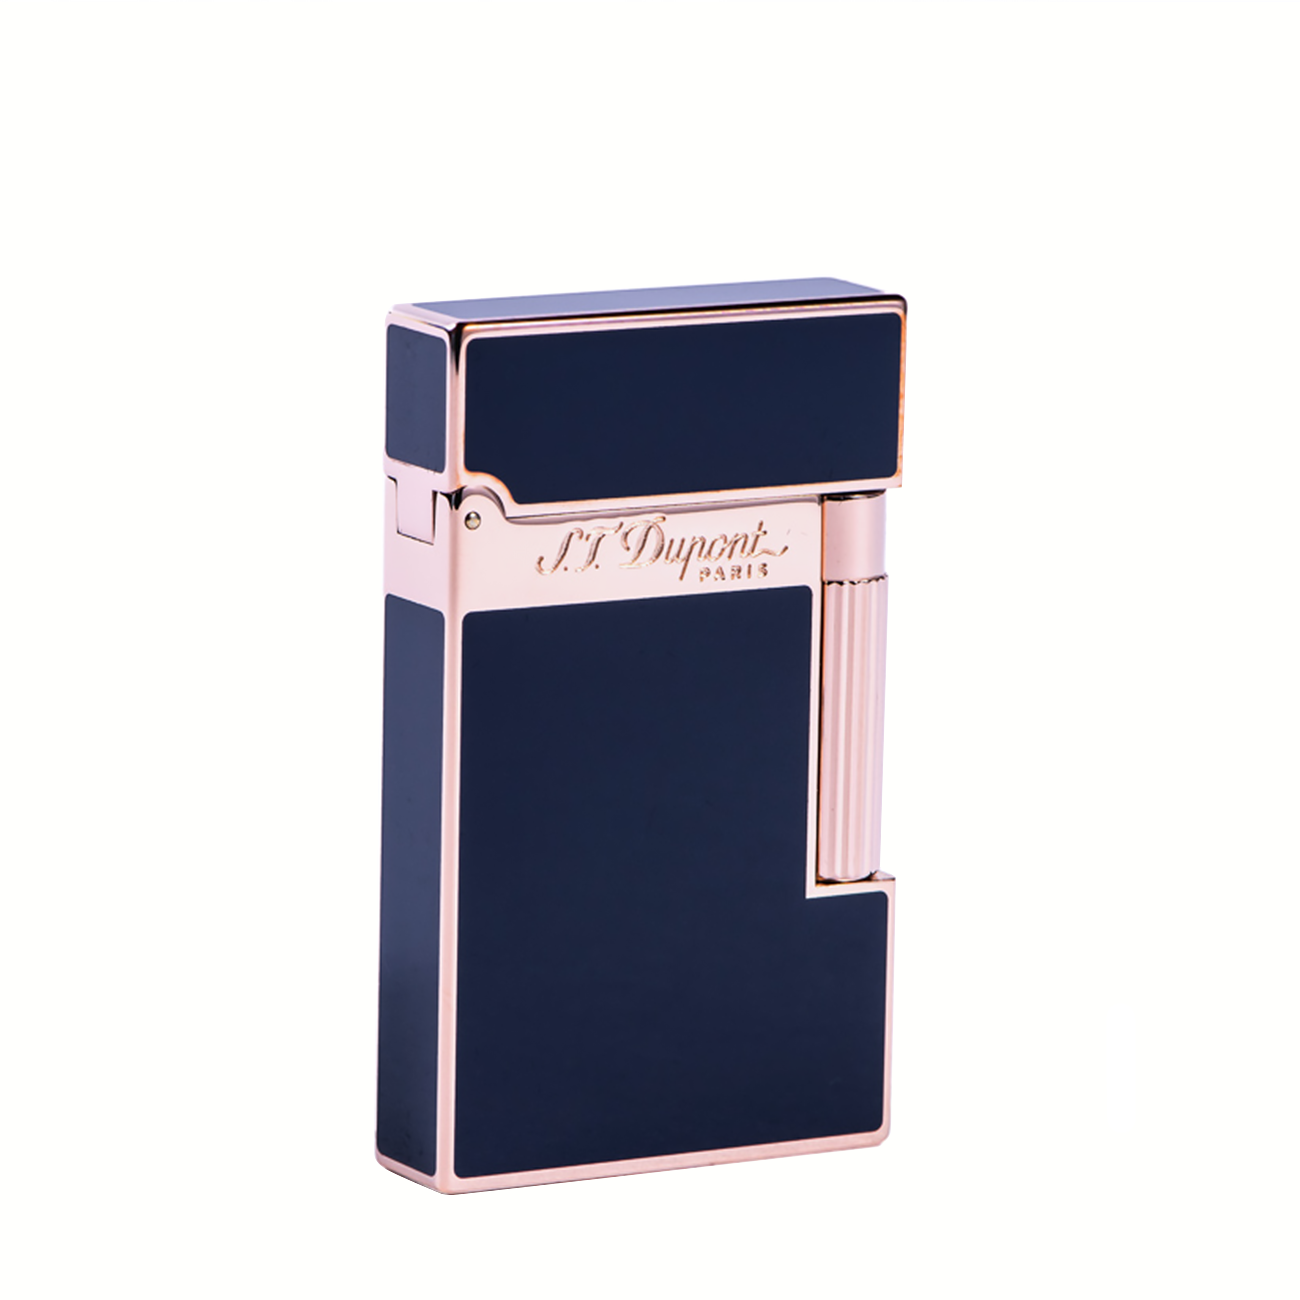 16424 PINK GOLD FINISH NATURAL LACQUER LIGHTER imagine produs